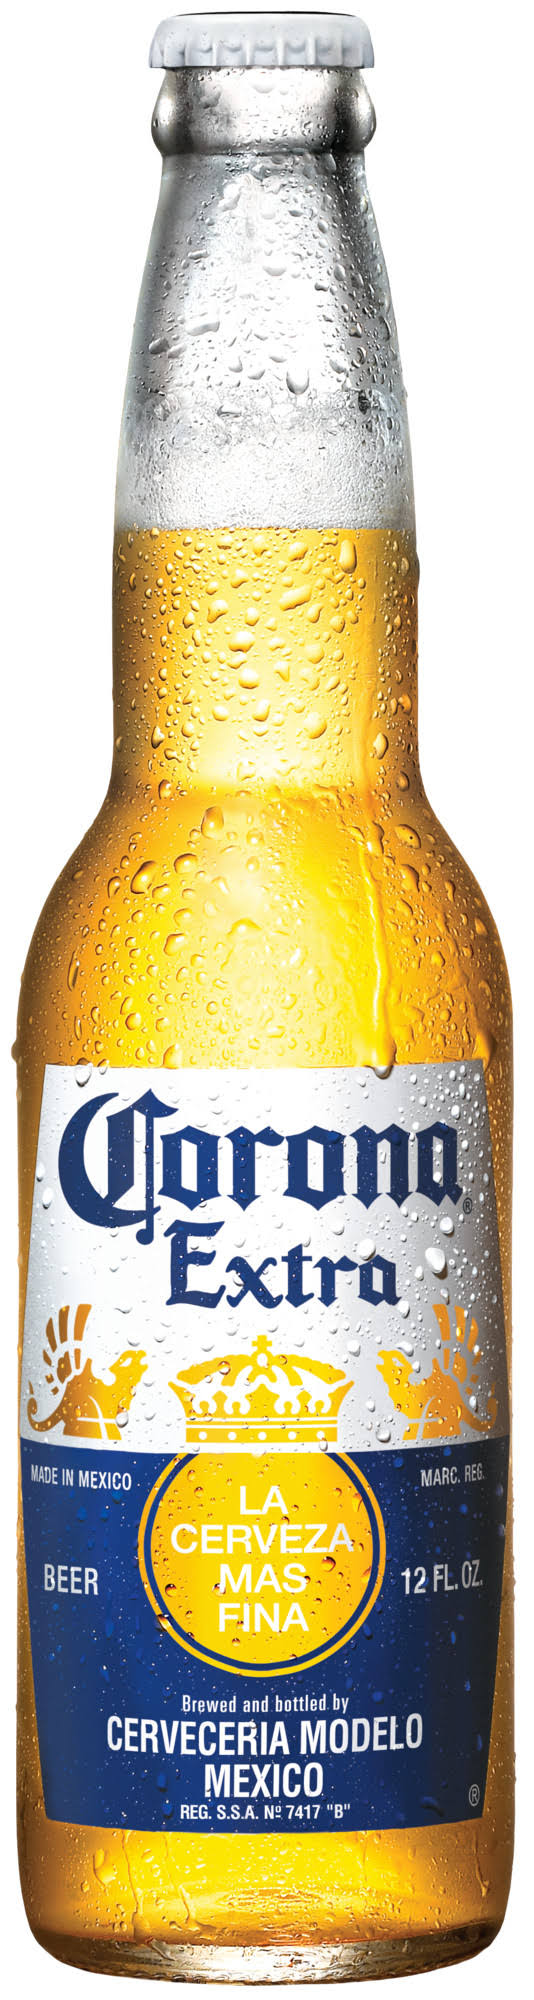 Corona Extra - 12oz Bottle